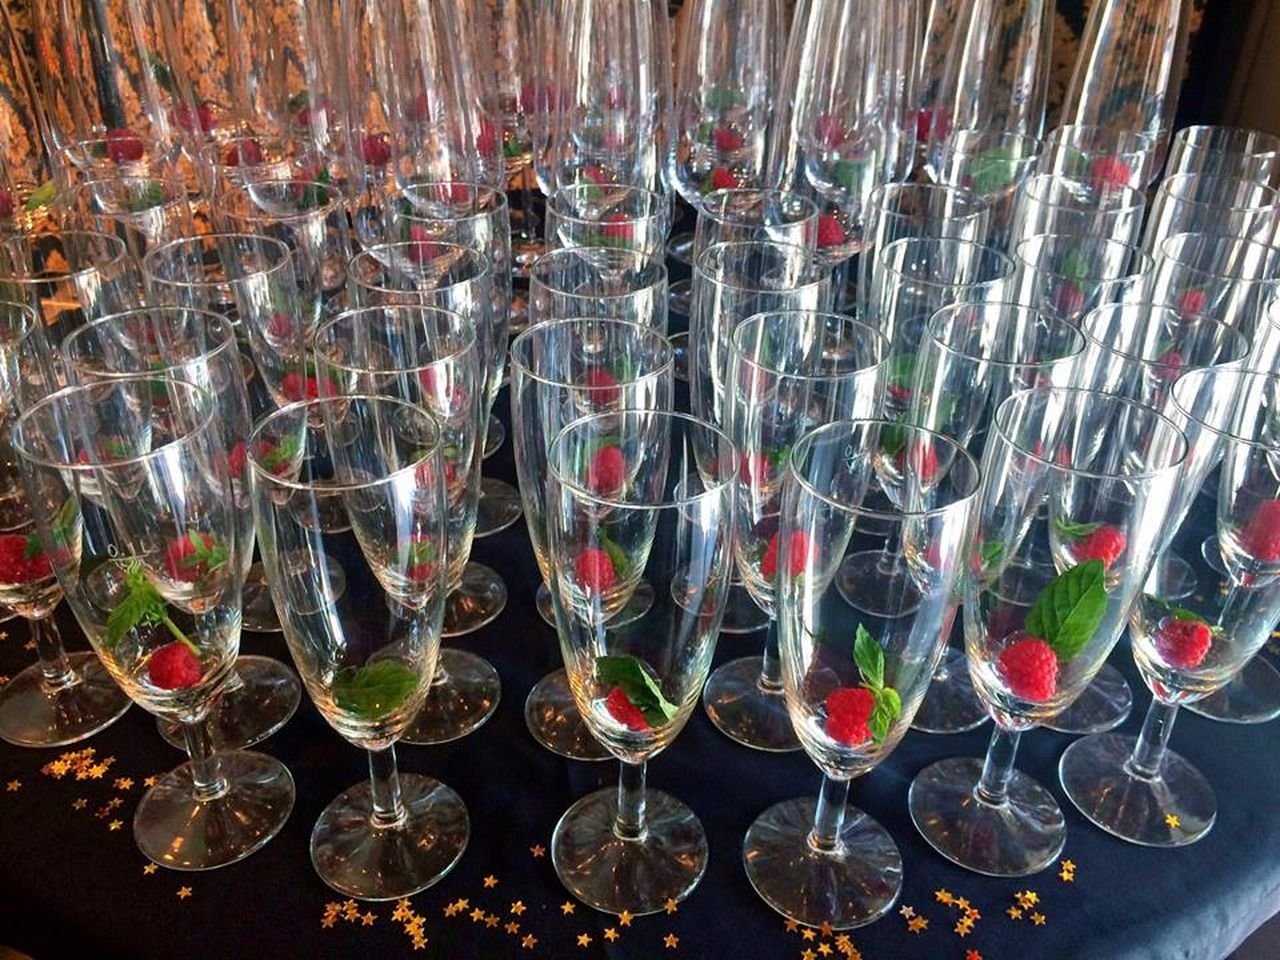 Arrangement Champagne Drinking Glass Gala Indoors  Mint No People Rapsberries Wine Wine Glass Wine Moments Wineglass